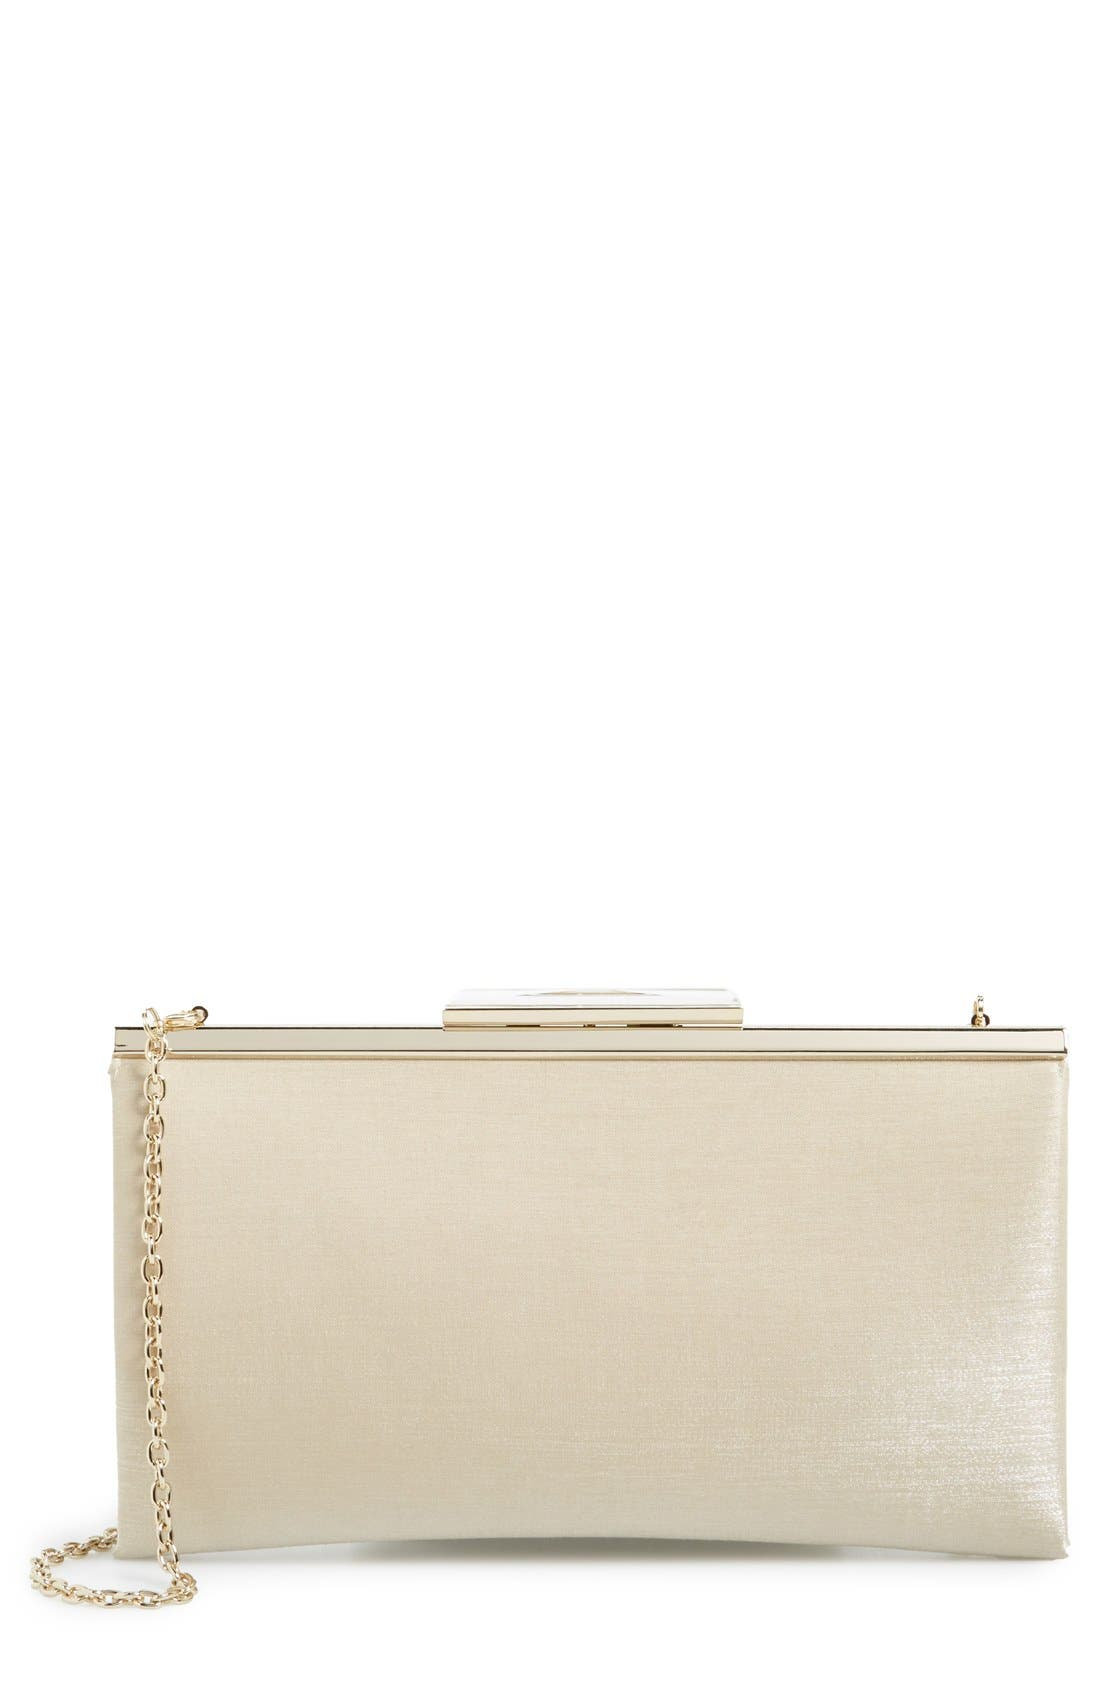 Alternate Image 1 Selected - Glint 'Shimmer Topper' Clutch